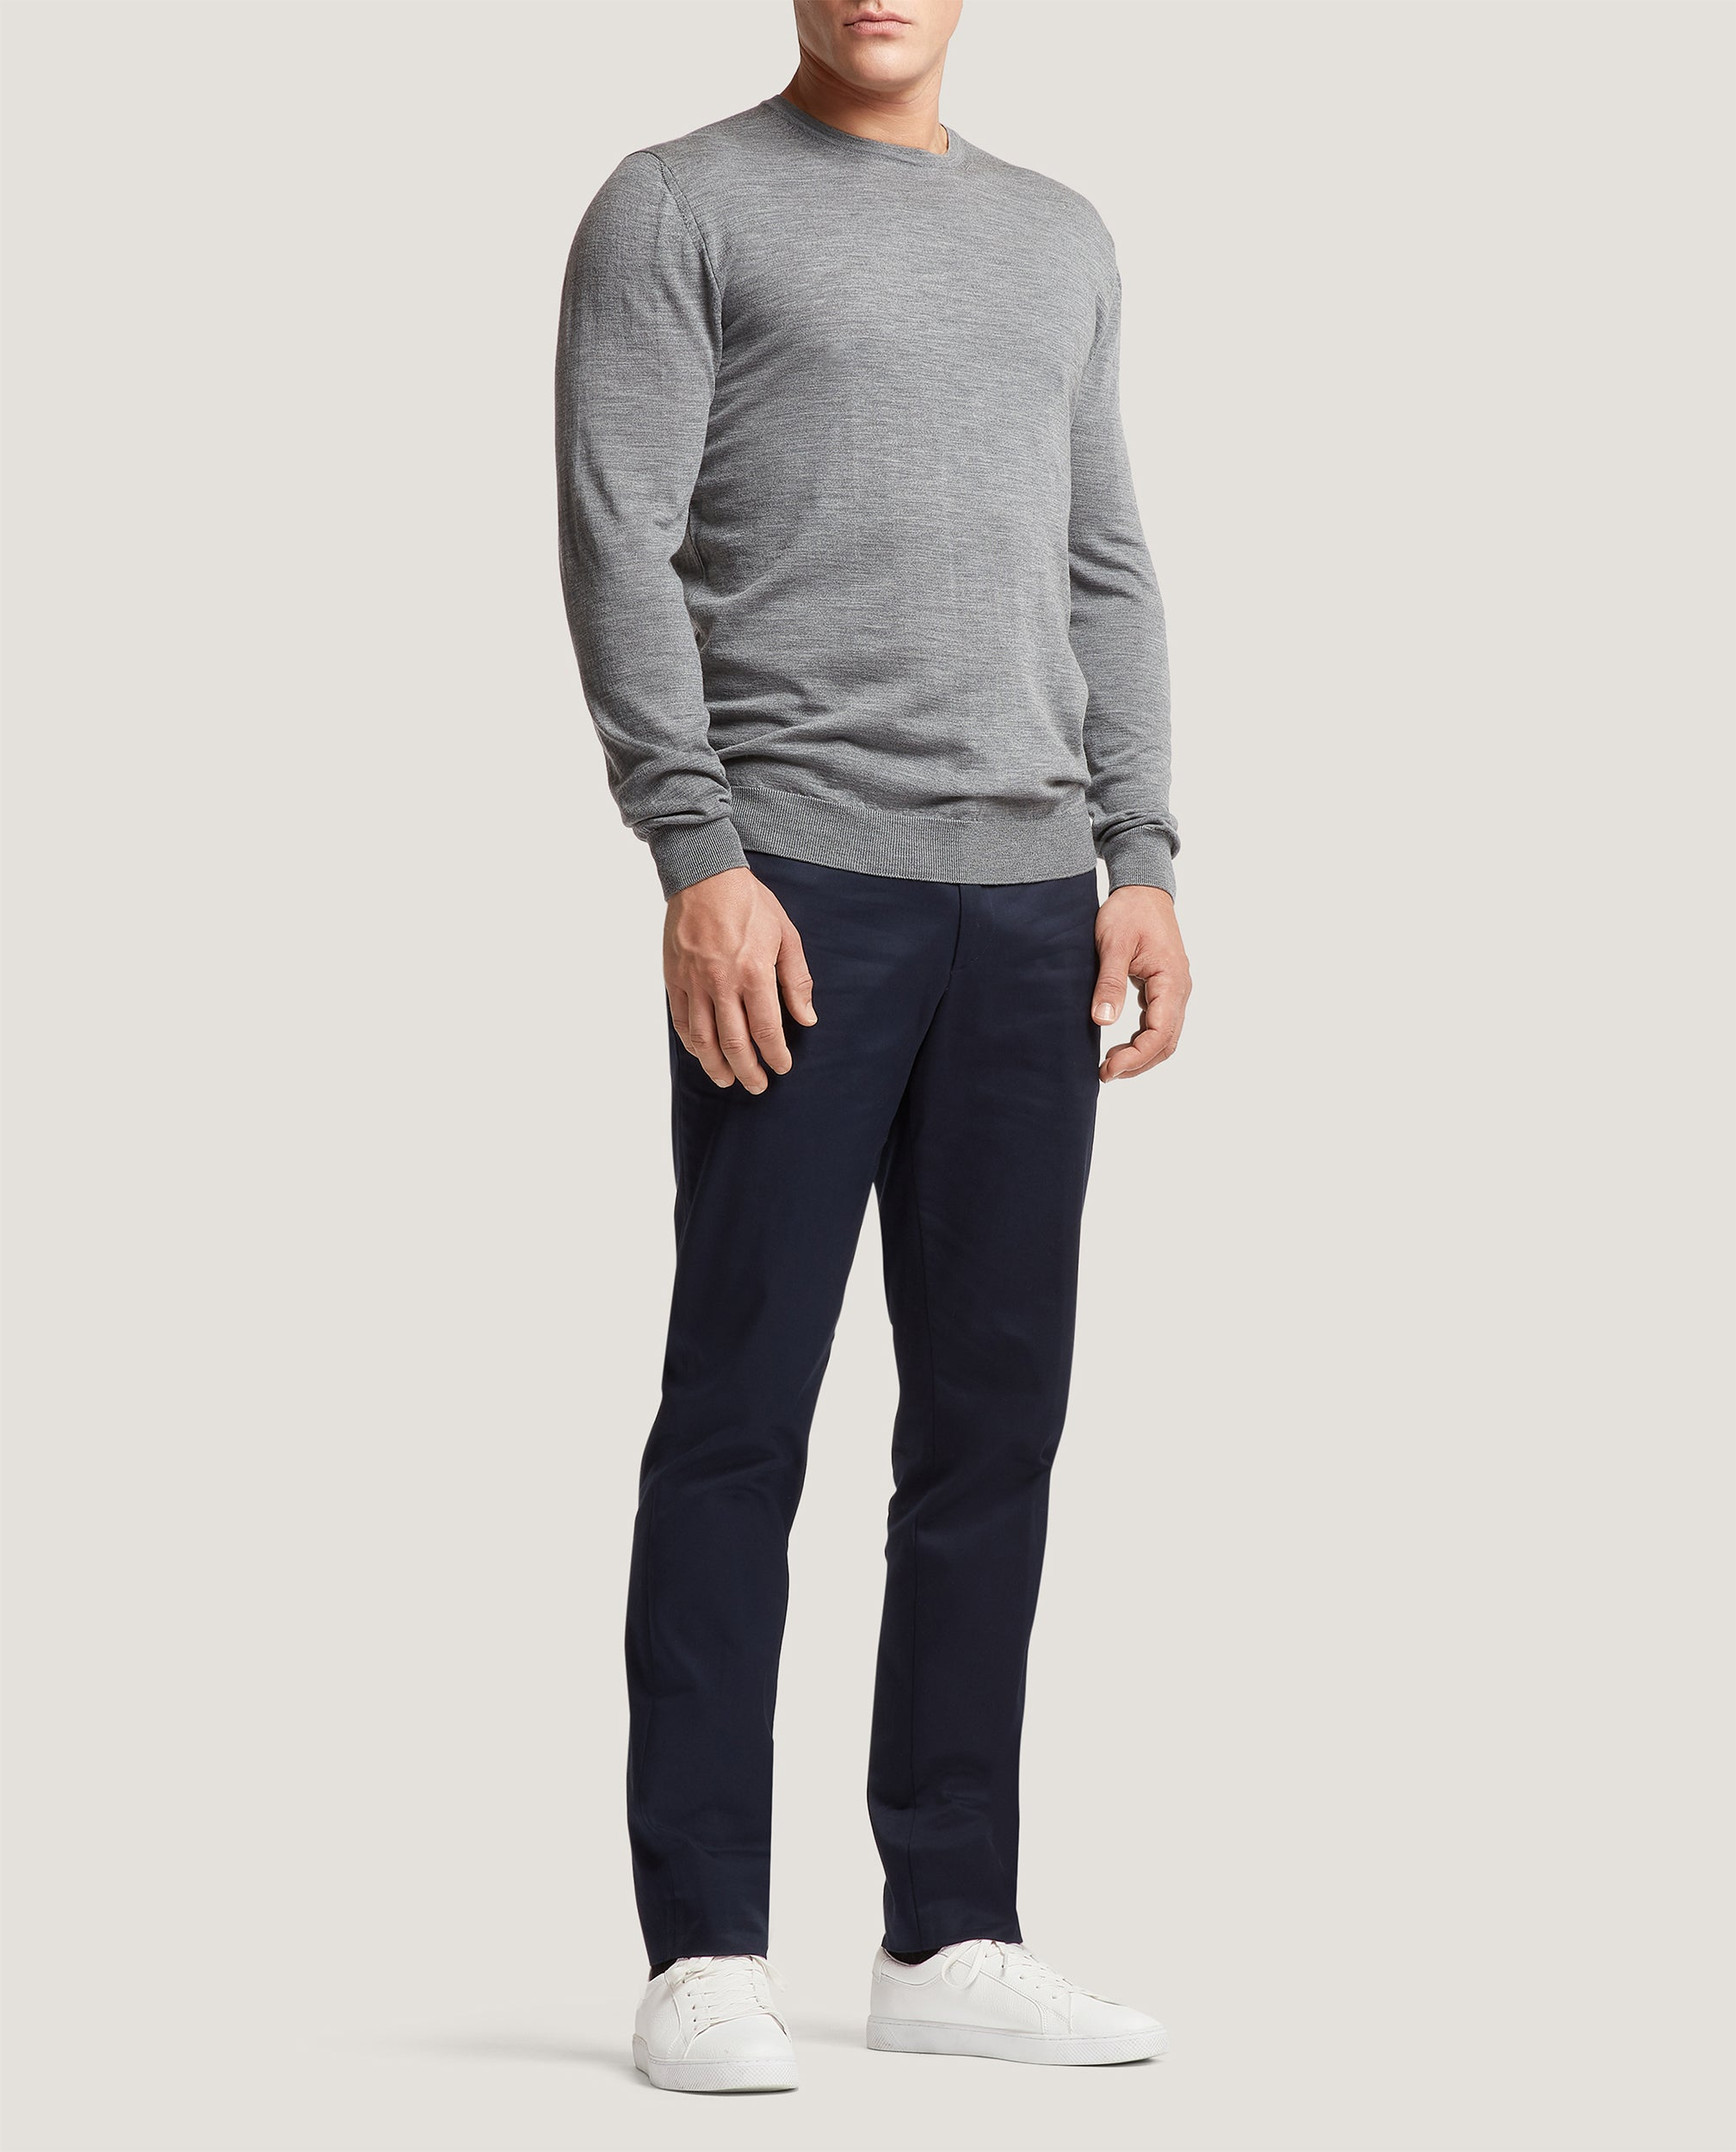 PAOL Merino wool sweater | Mid Grey